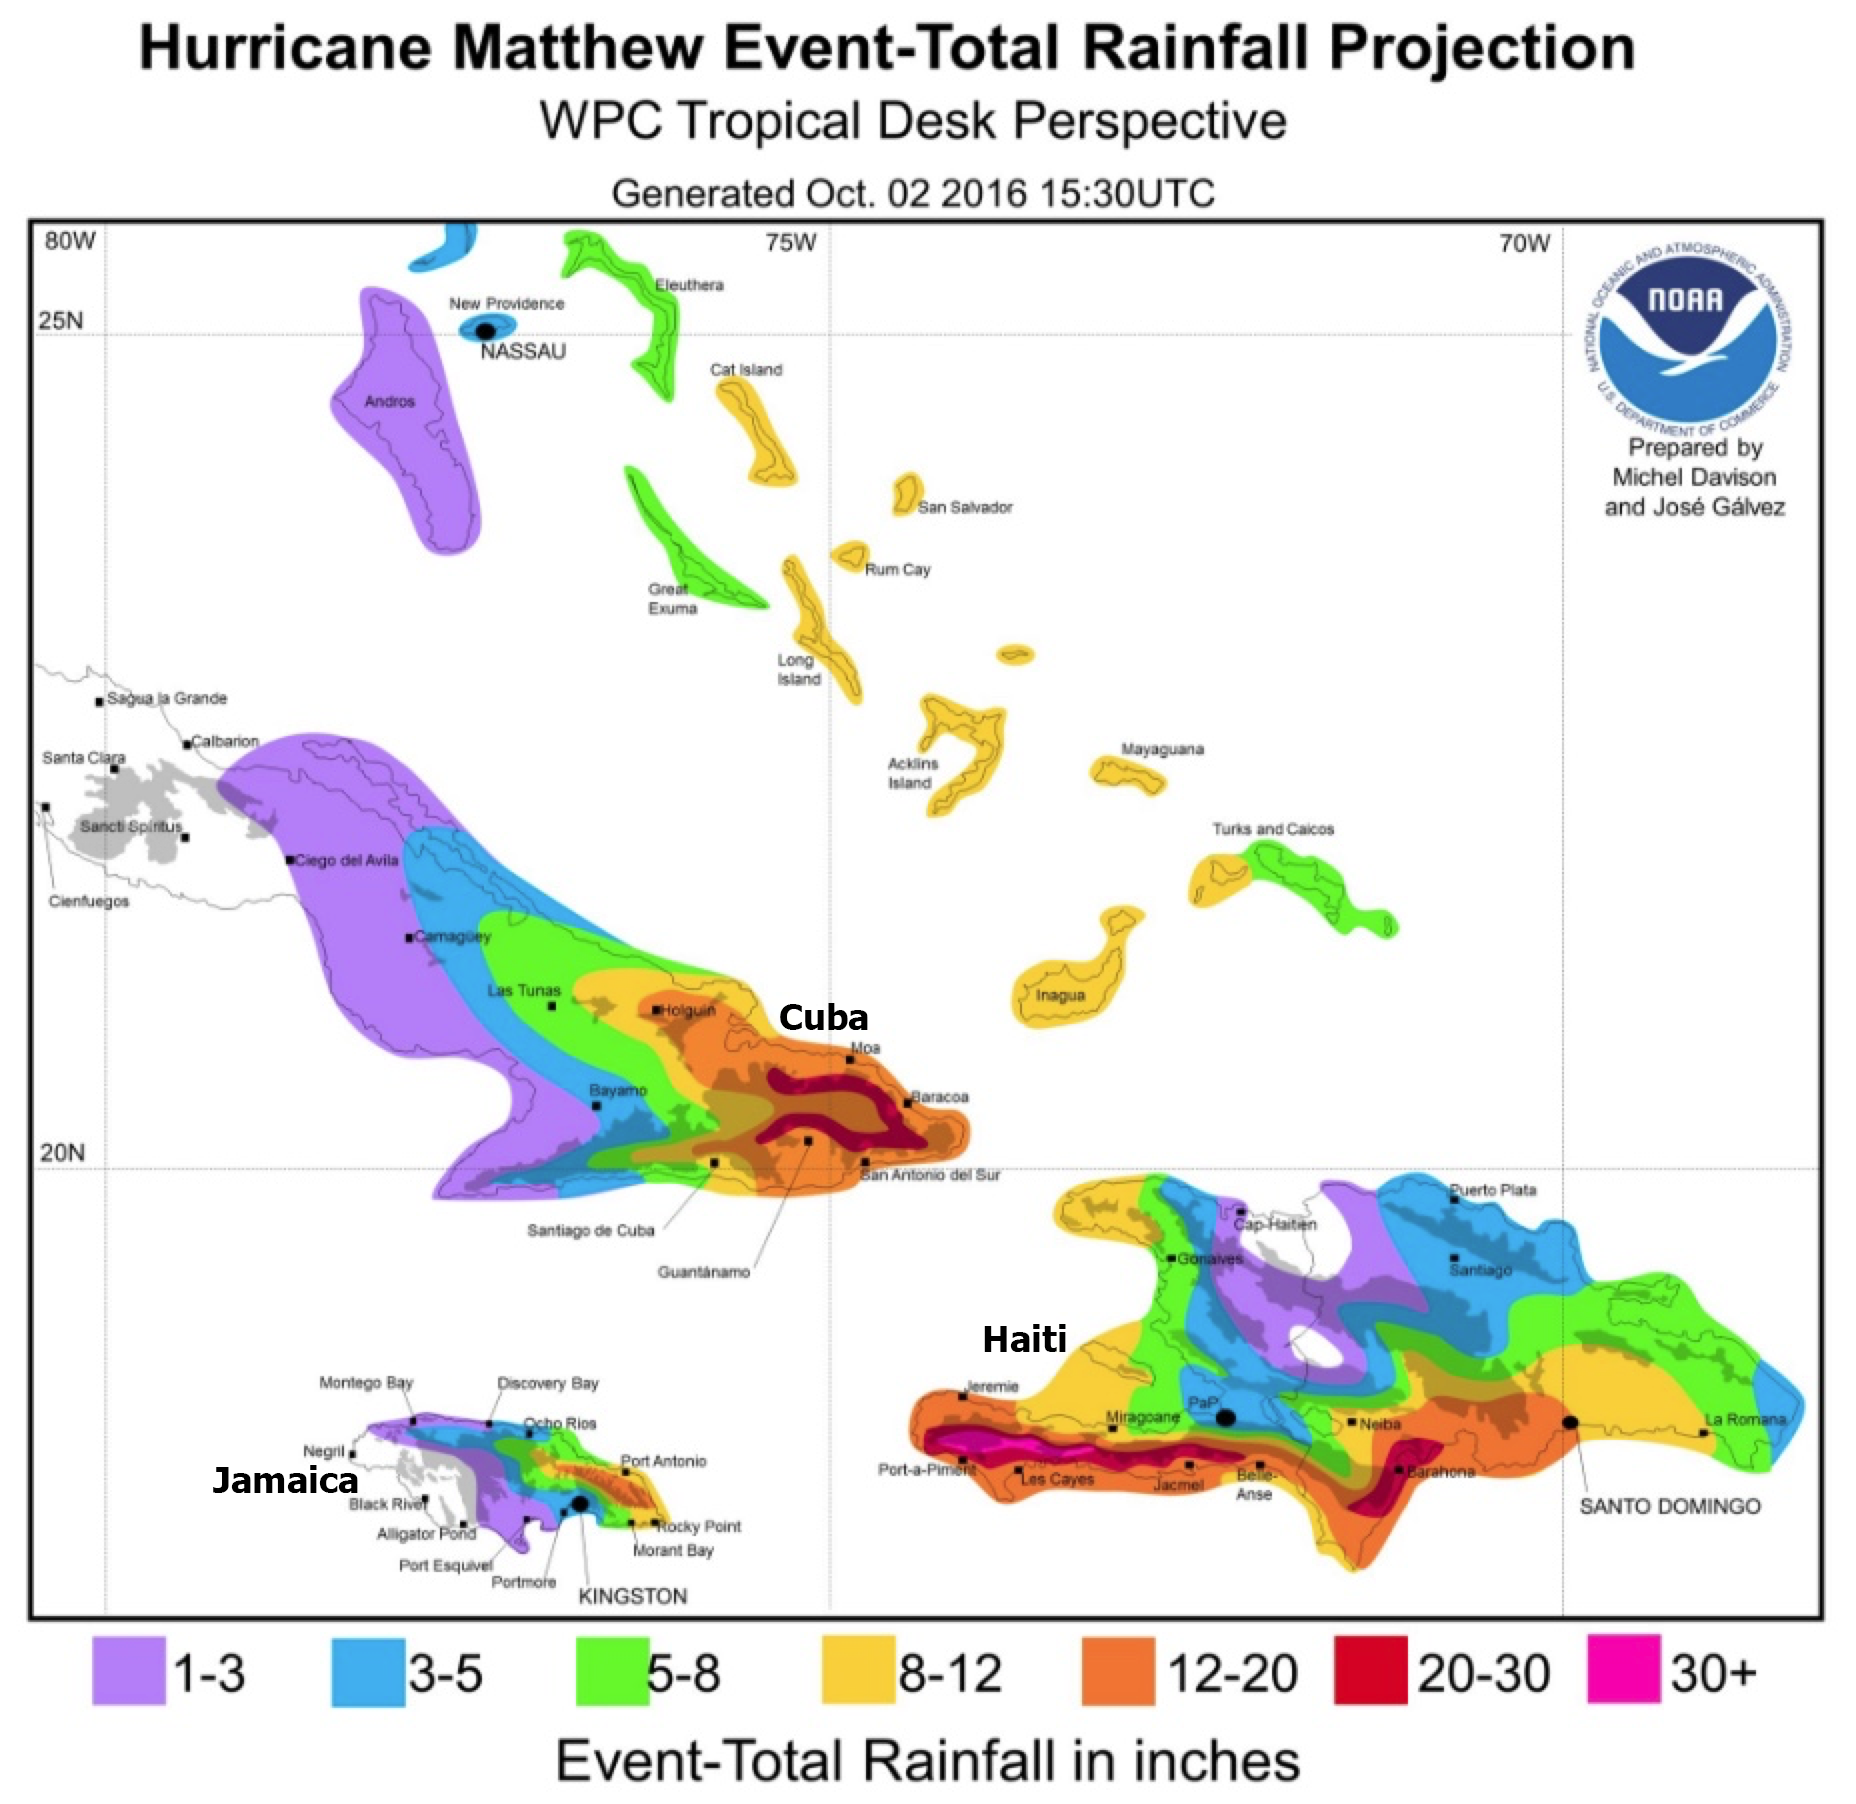 Haiti in Extreme Danger from Hurricane Matthew